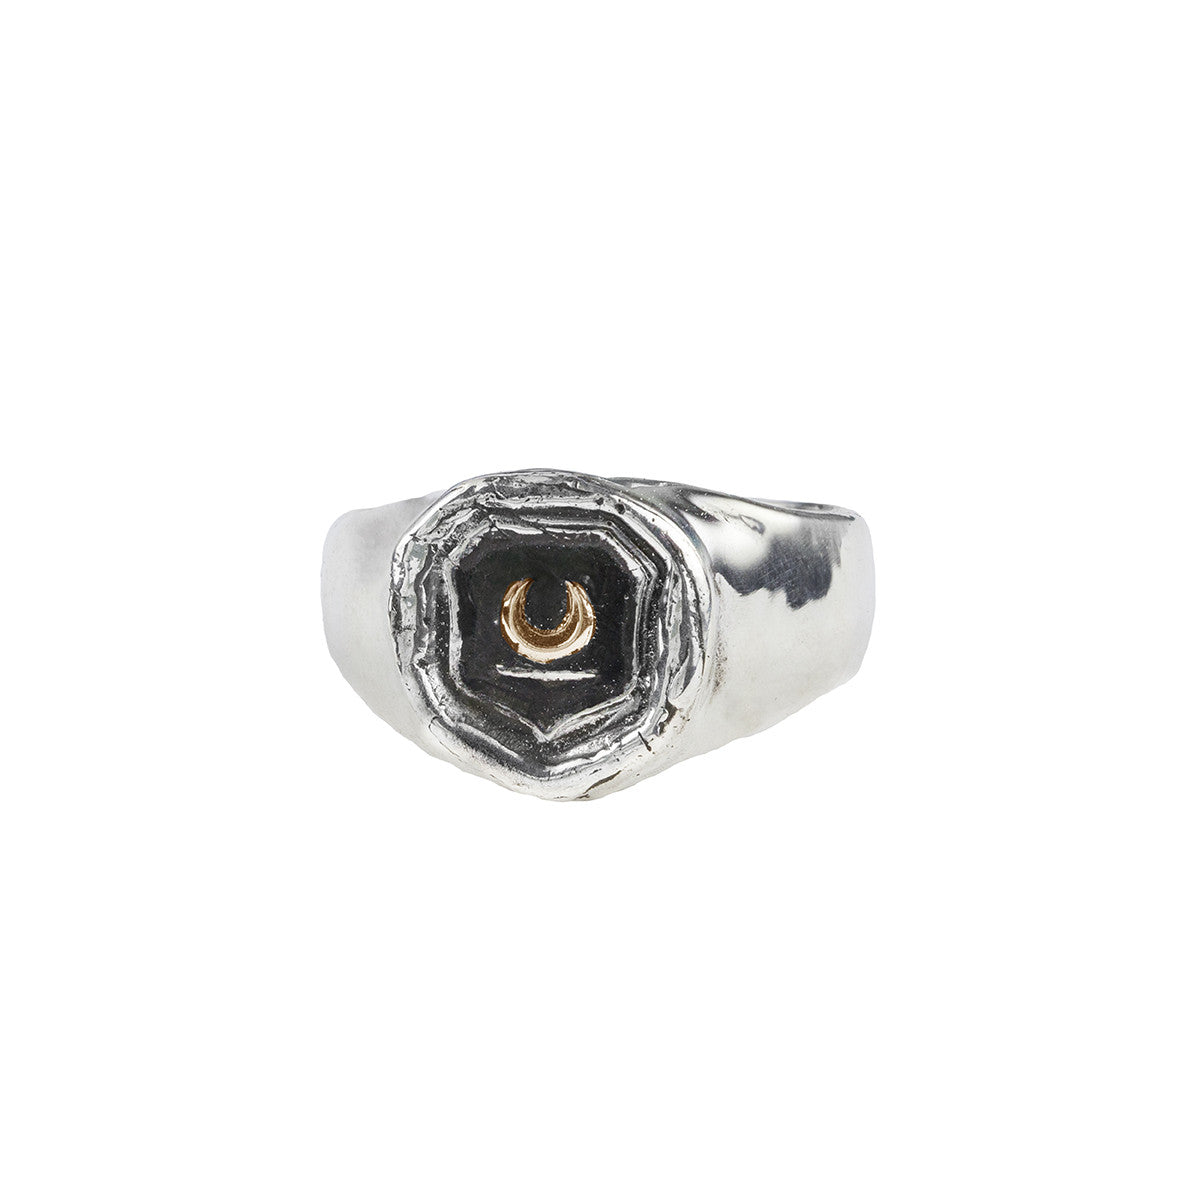 hires en of ring links london gb silver timeless signet sterling